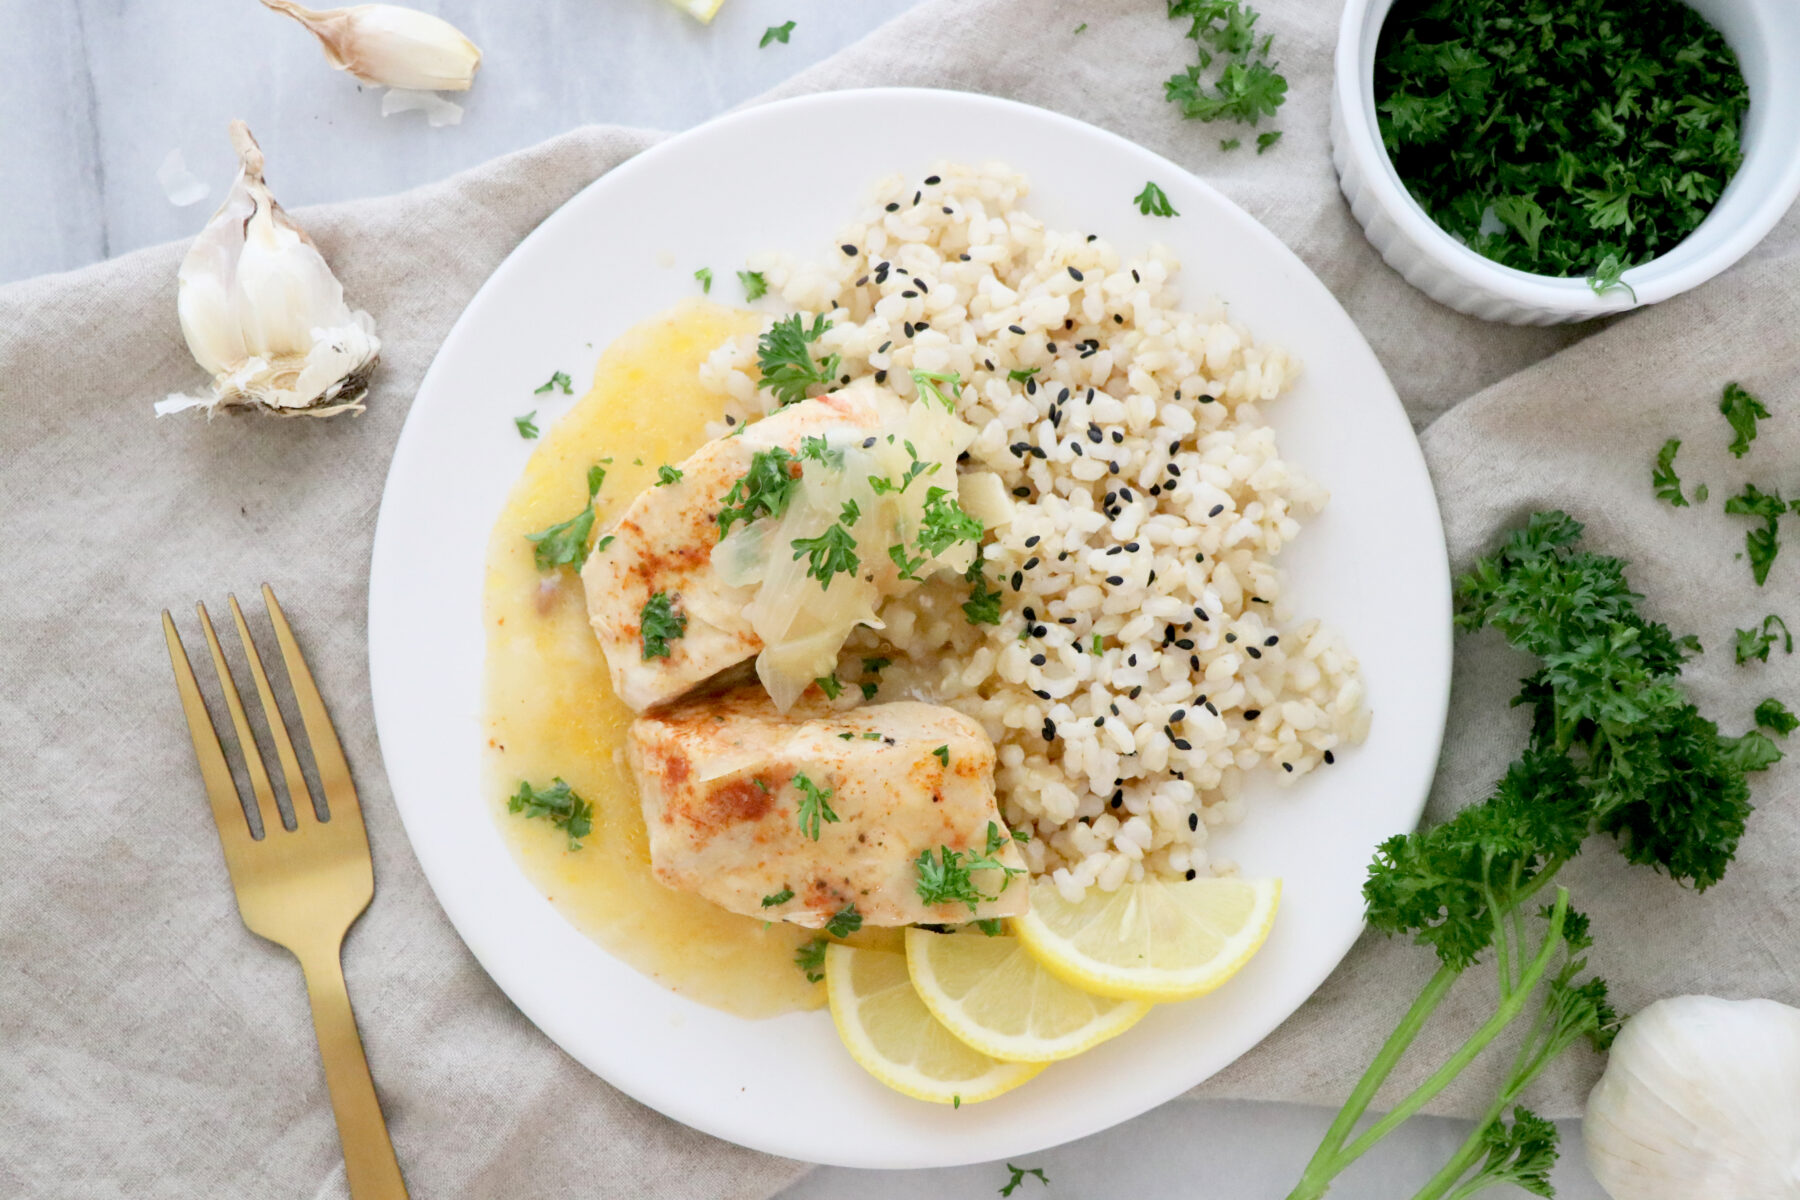 White plate of lemon garlic chicken with sauce, brown rice and lemon slices.